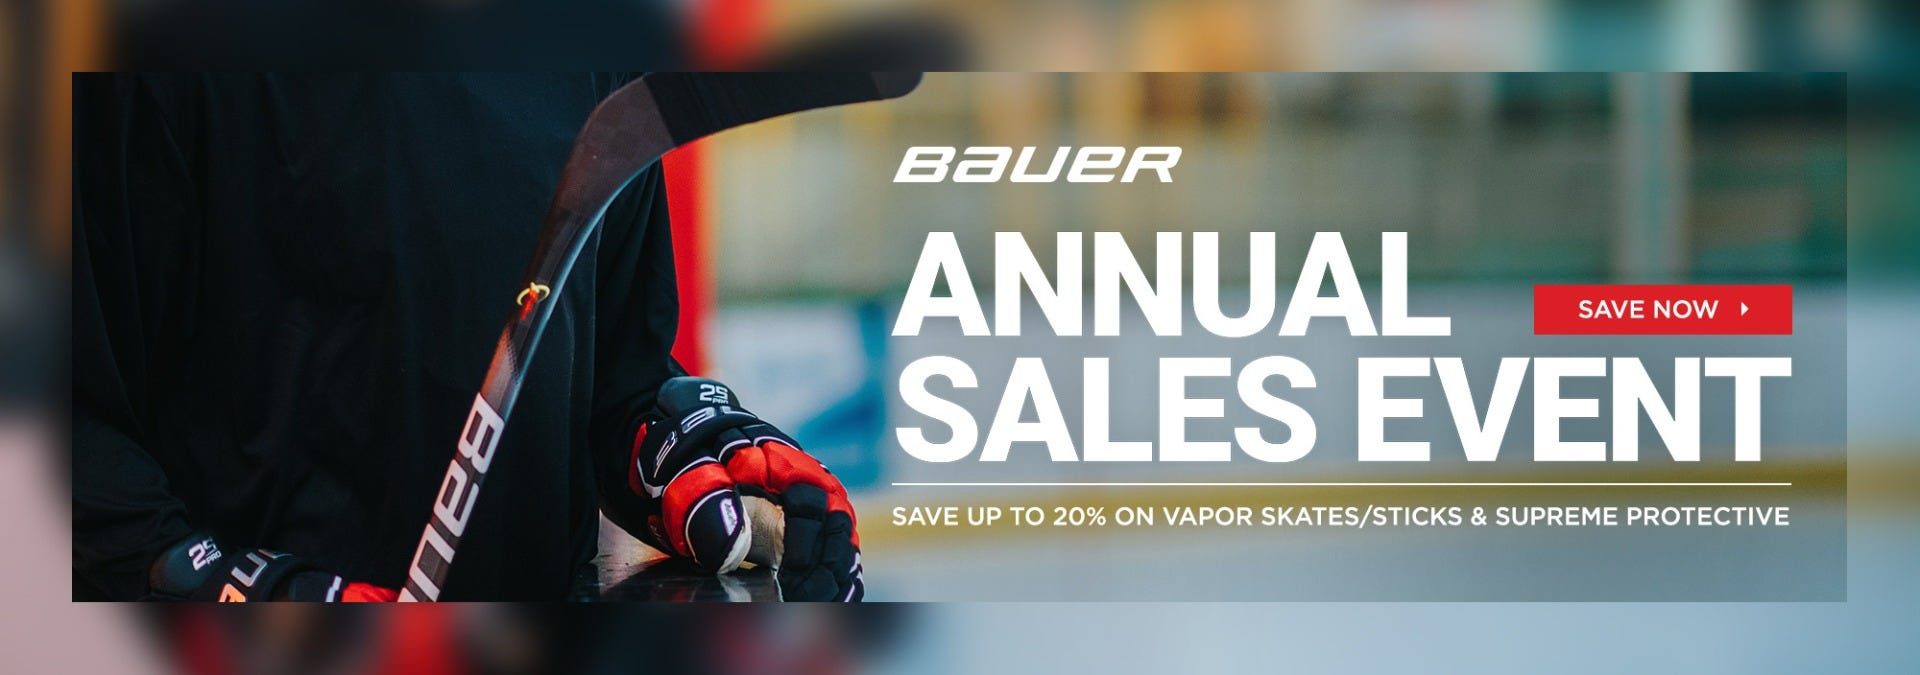 Bauer Annual Sales Event